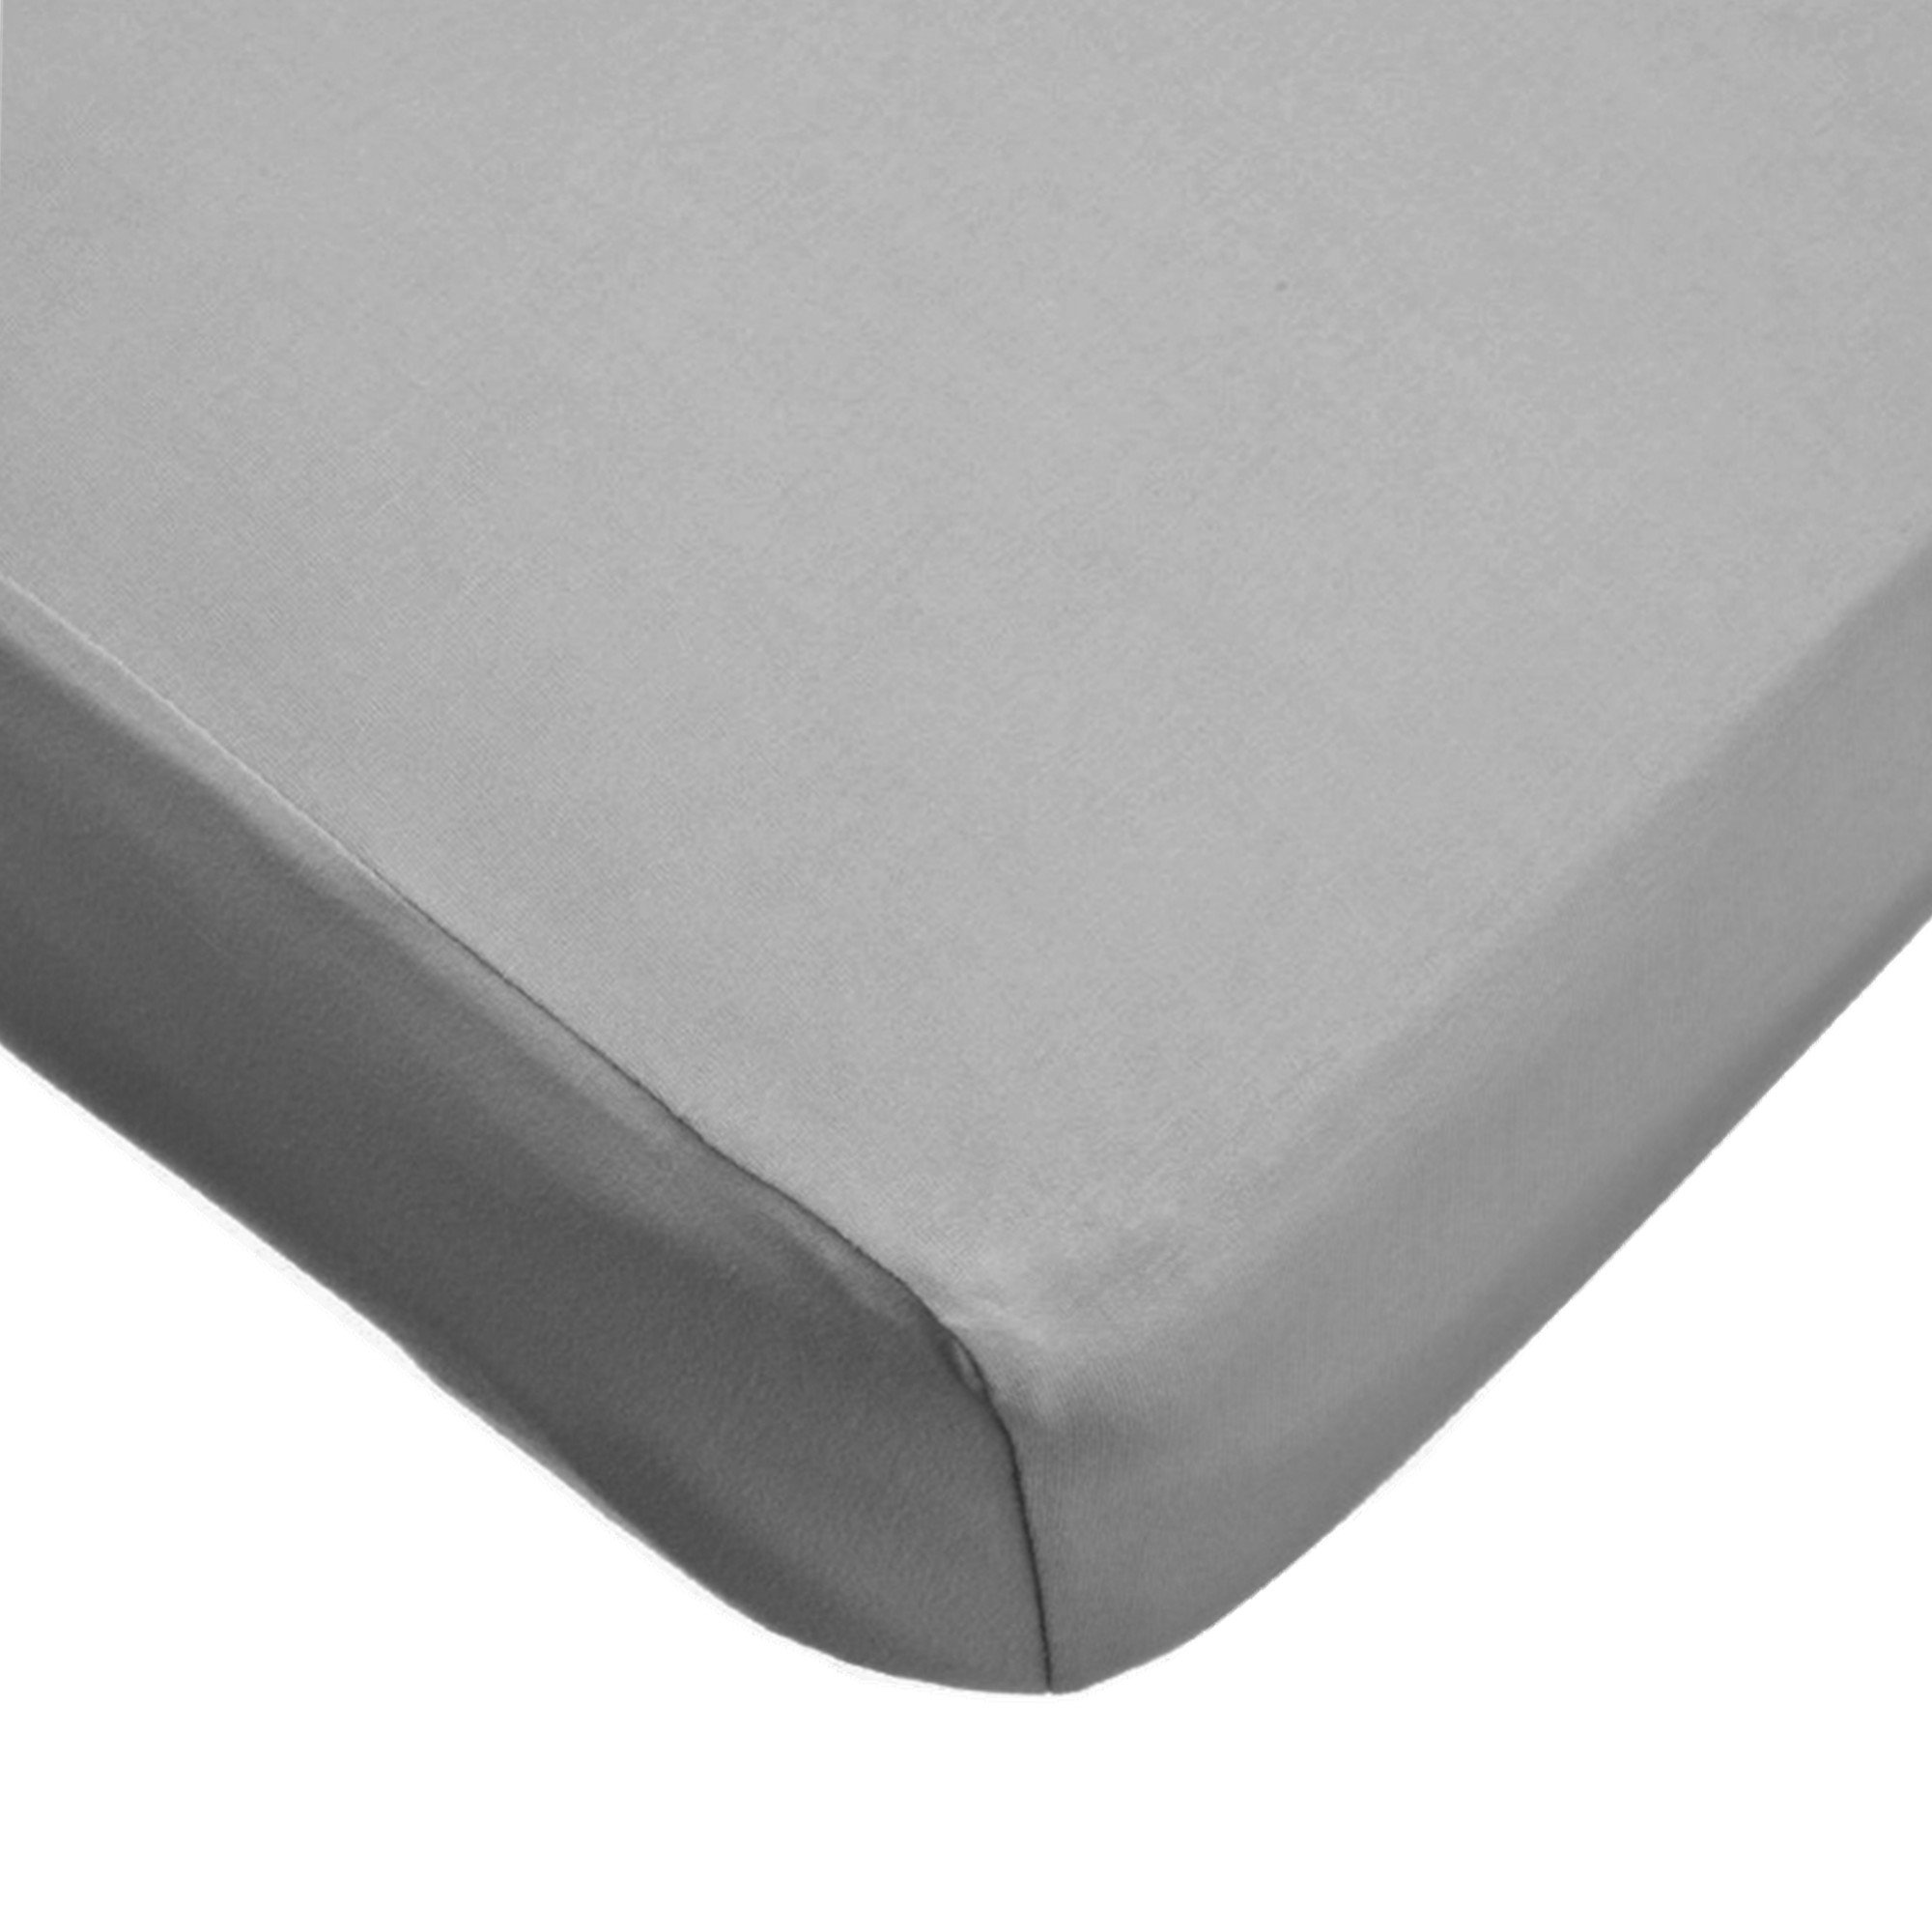 American Baby Company Supreme Jersey Knit Fitted Crib Sheet, Gray